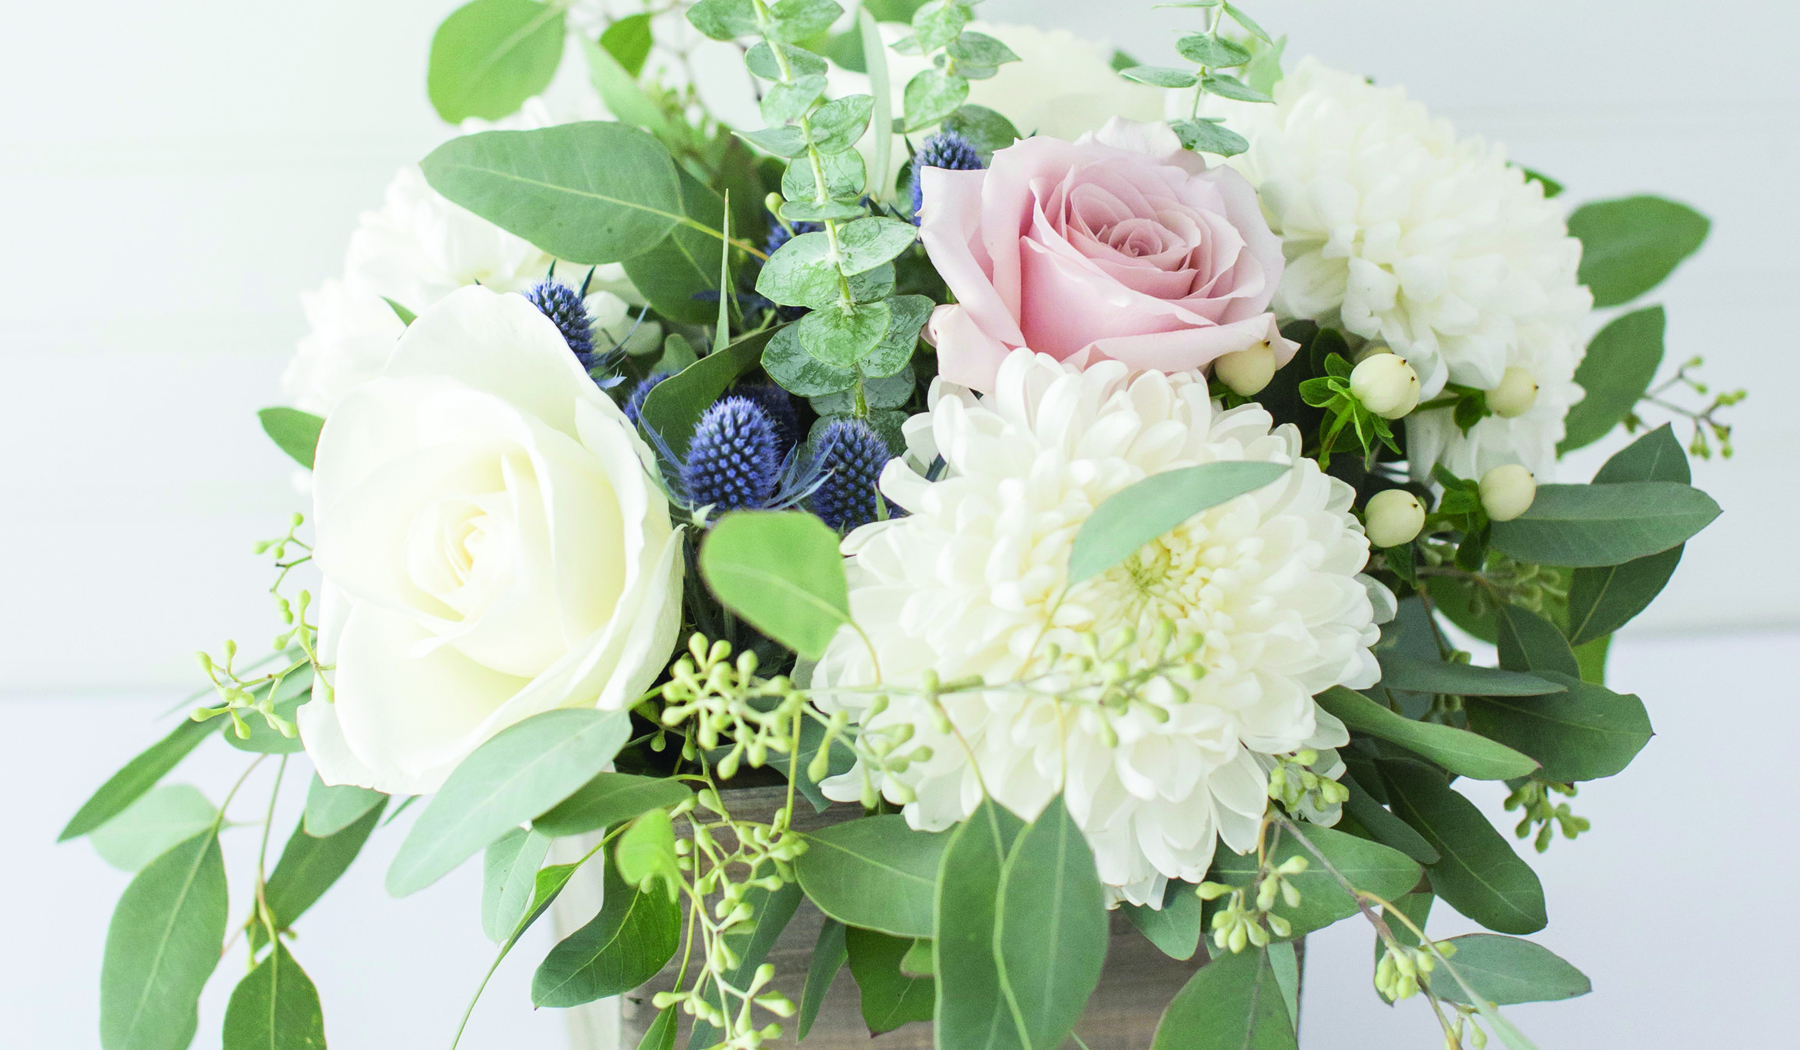 BLOG-Header_WhatDoWeddingFlowersReallyCost-OKOTAUPDATED.jpg